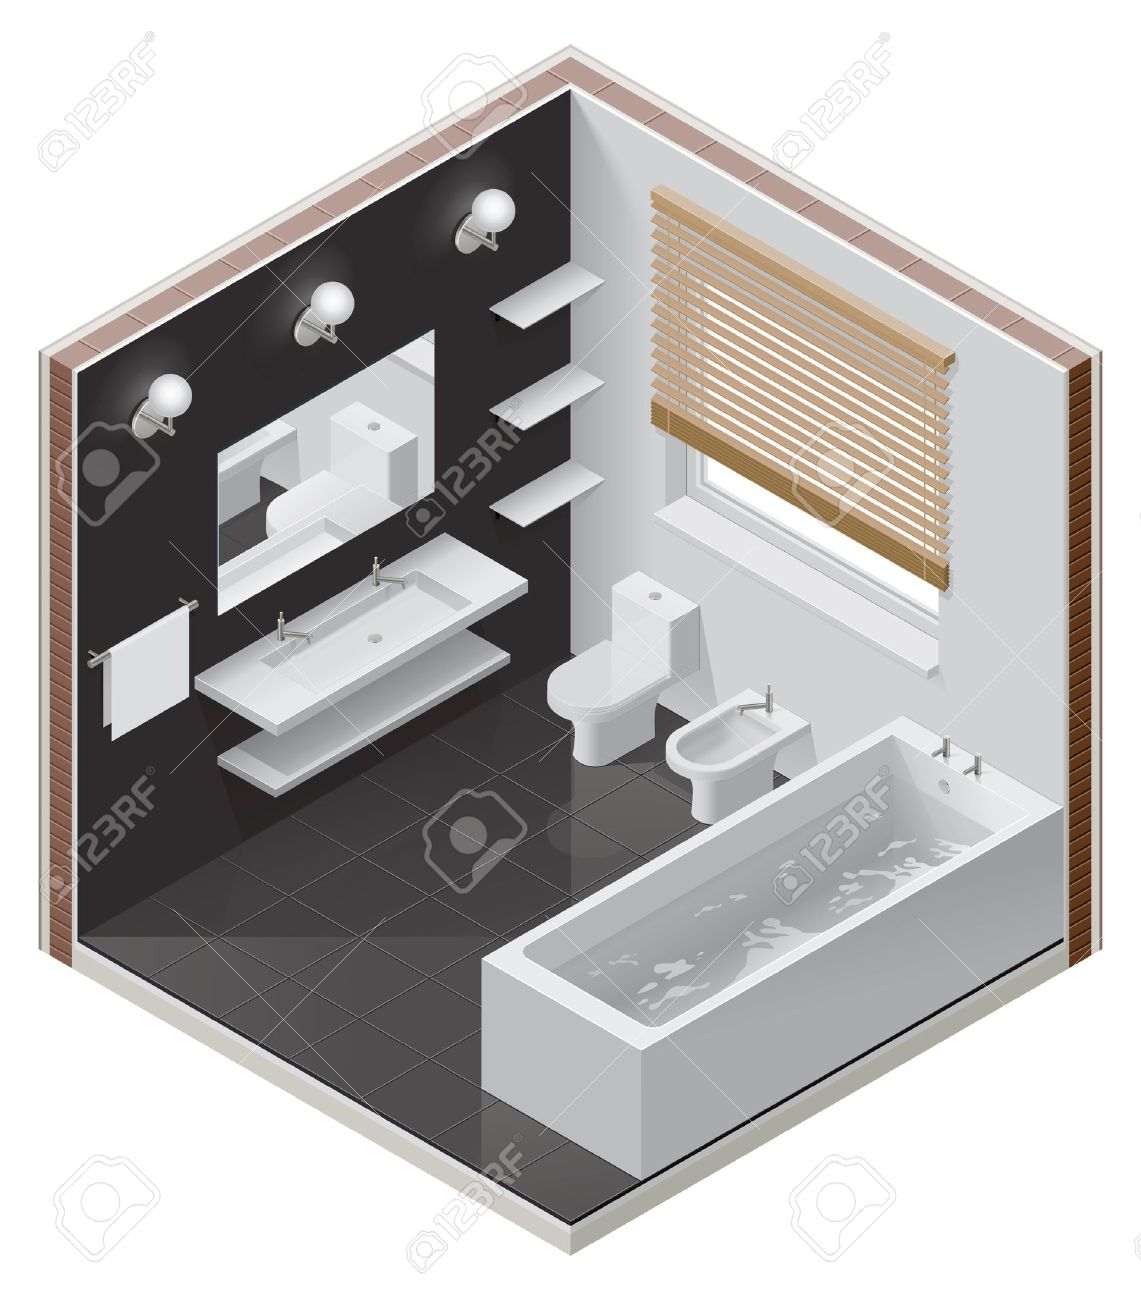 isometric bathroom icon Stock Vector - 13524306